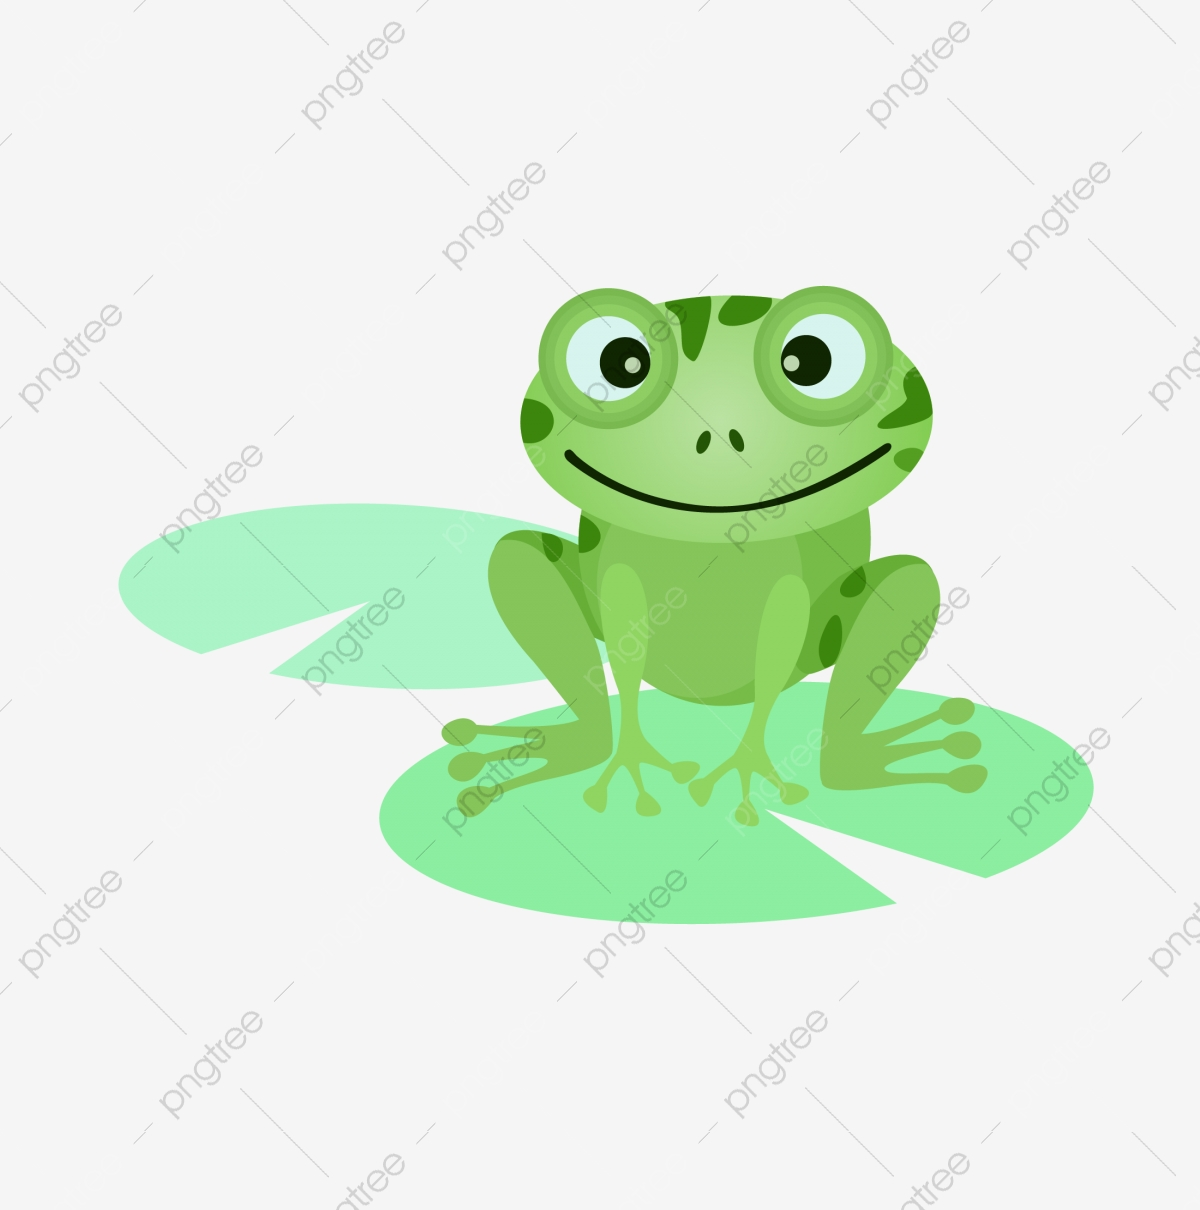 Green Frog, Frog Clipart, Frog, Cartoon PNG Transparent Image and